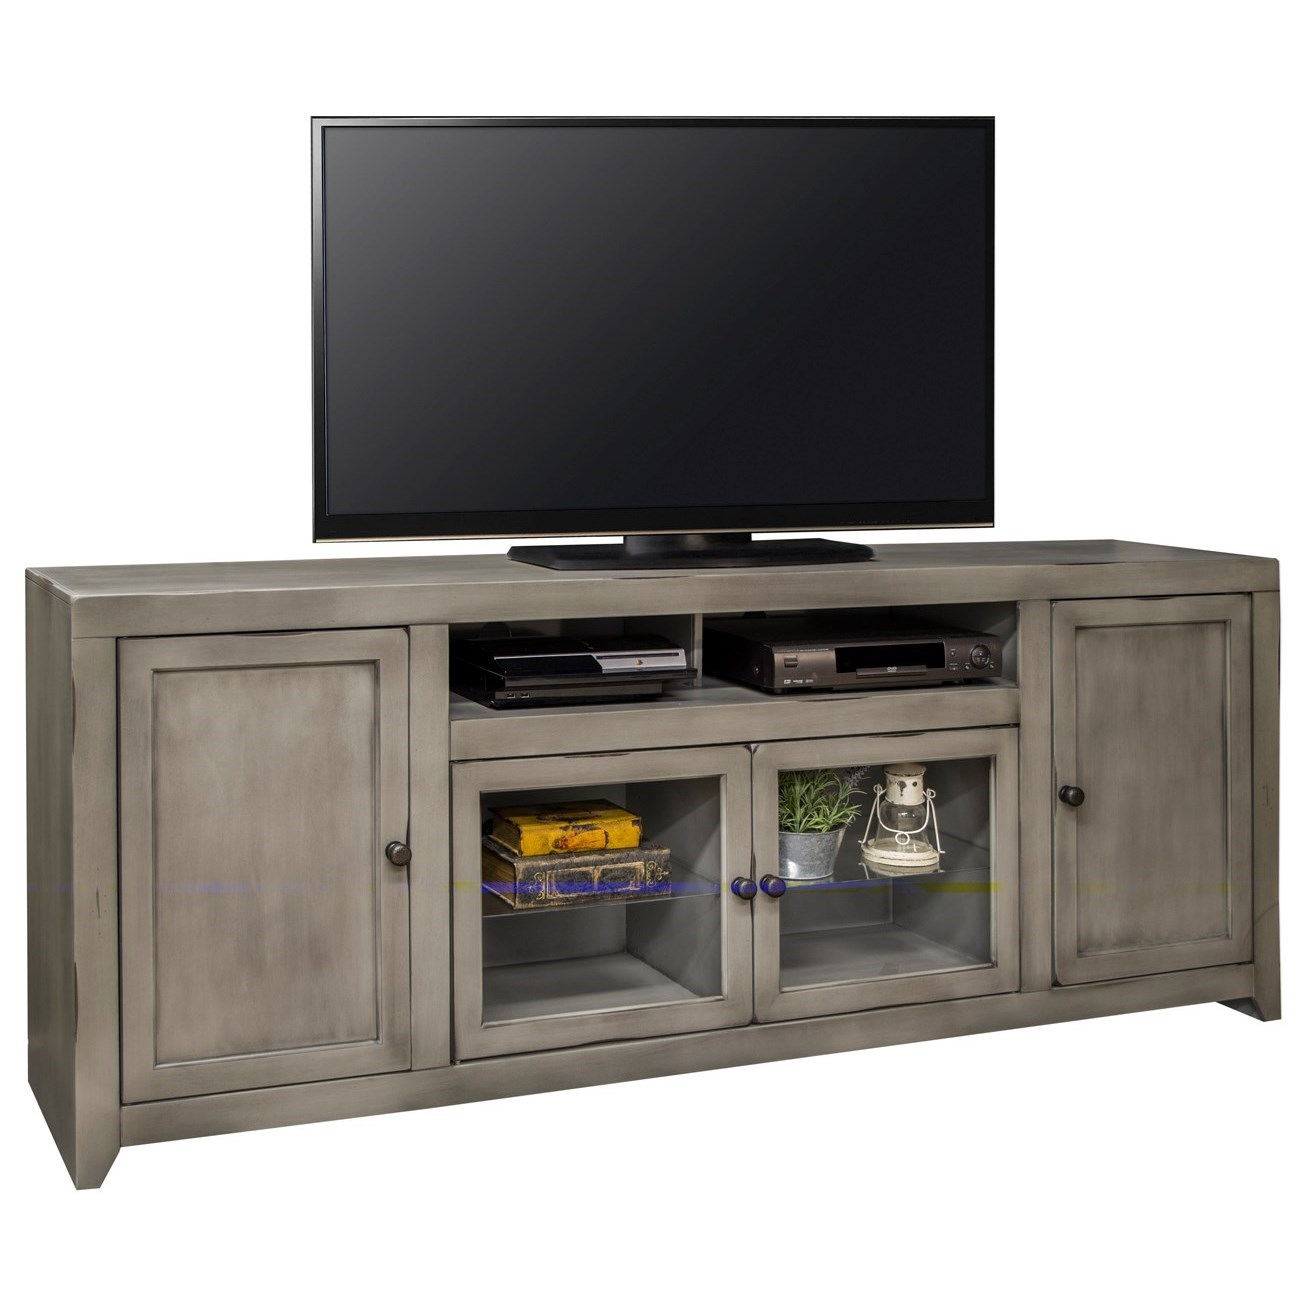 "Legends Furniture Astoria Collection Astoria 85"" TV Console - Item Number: AS1585-AGG"